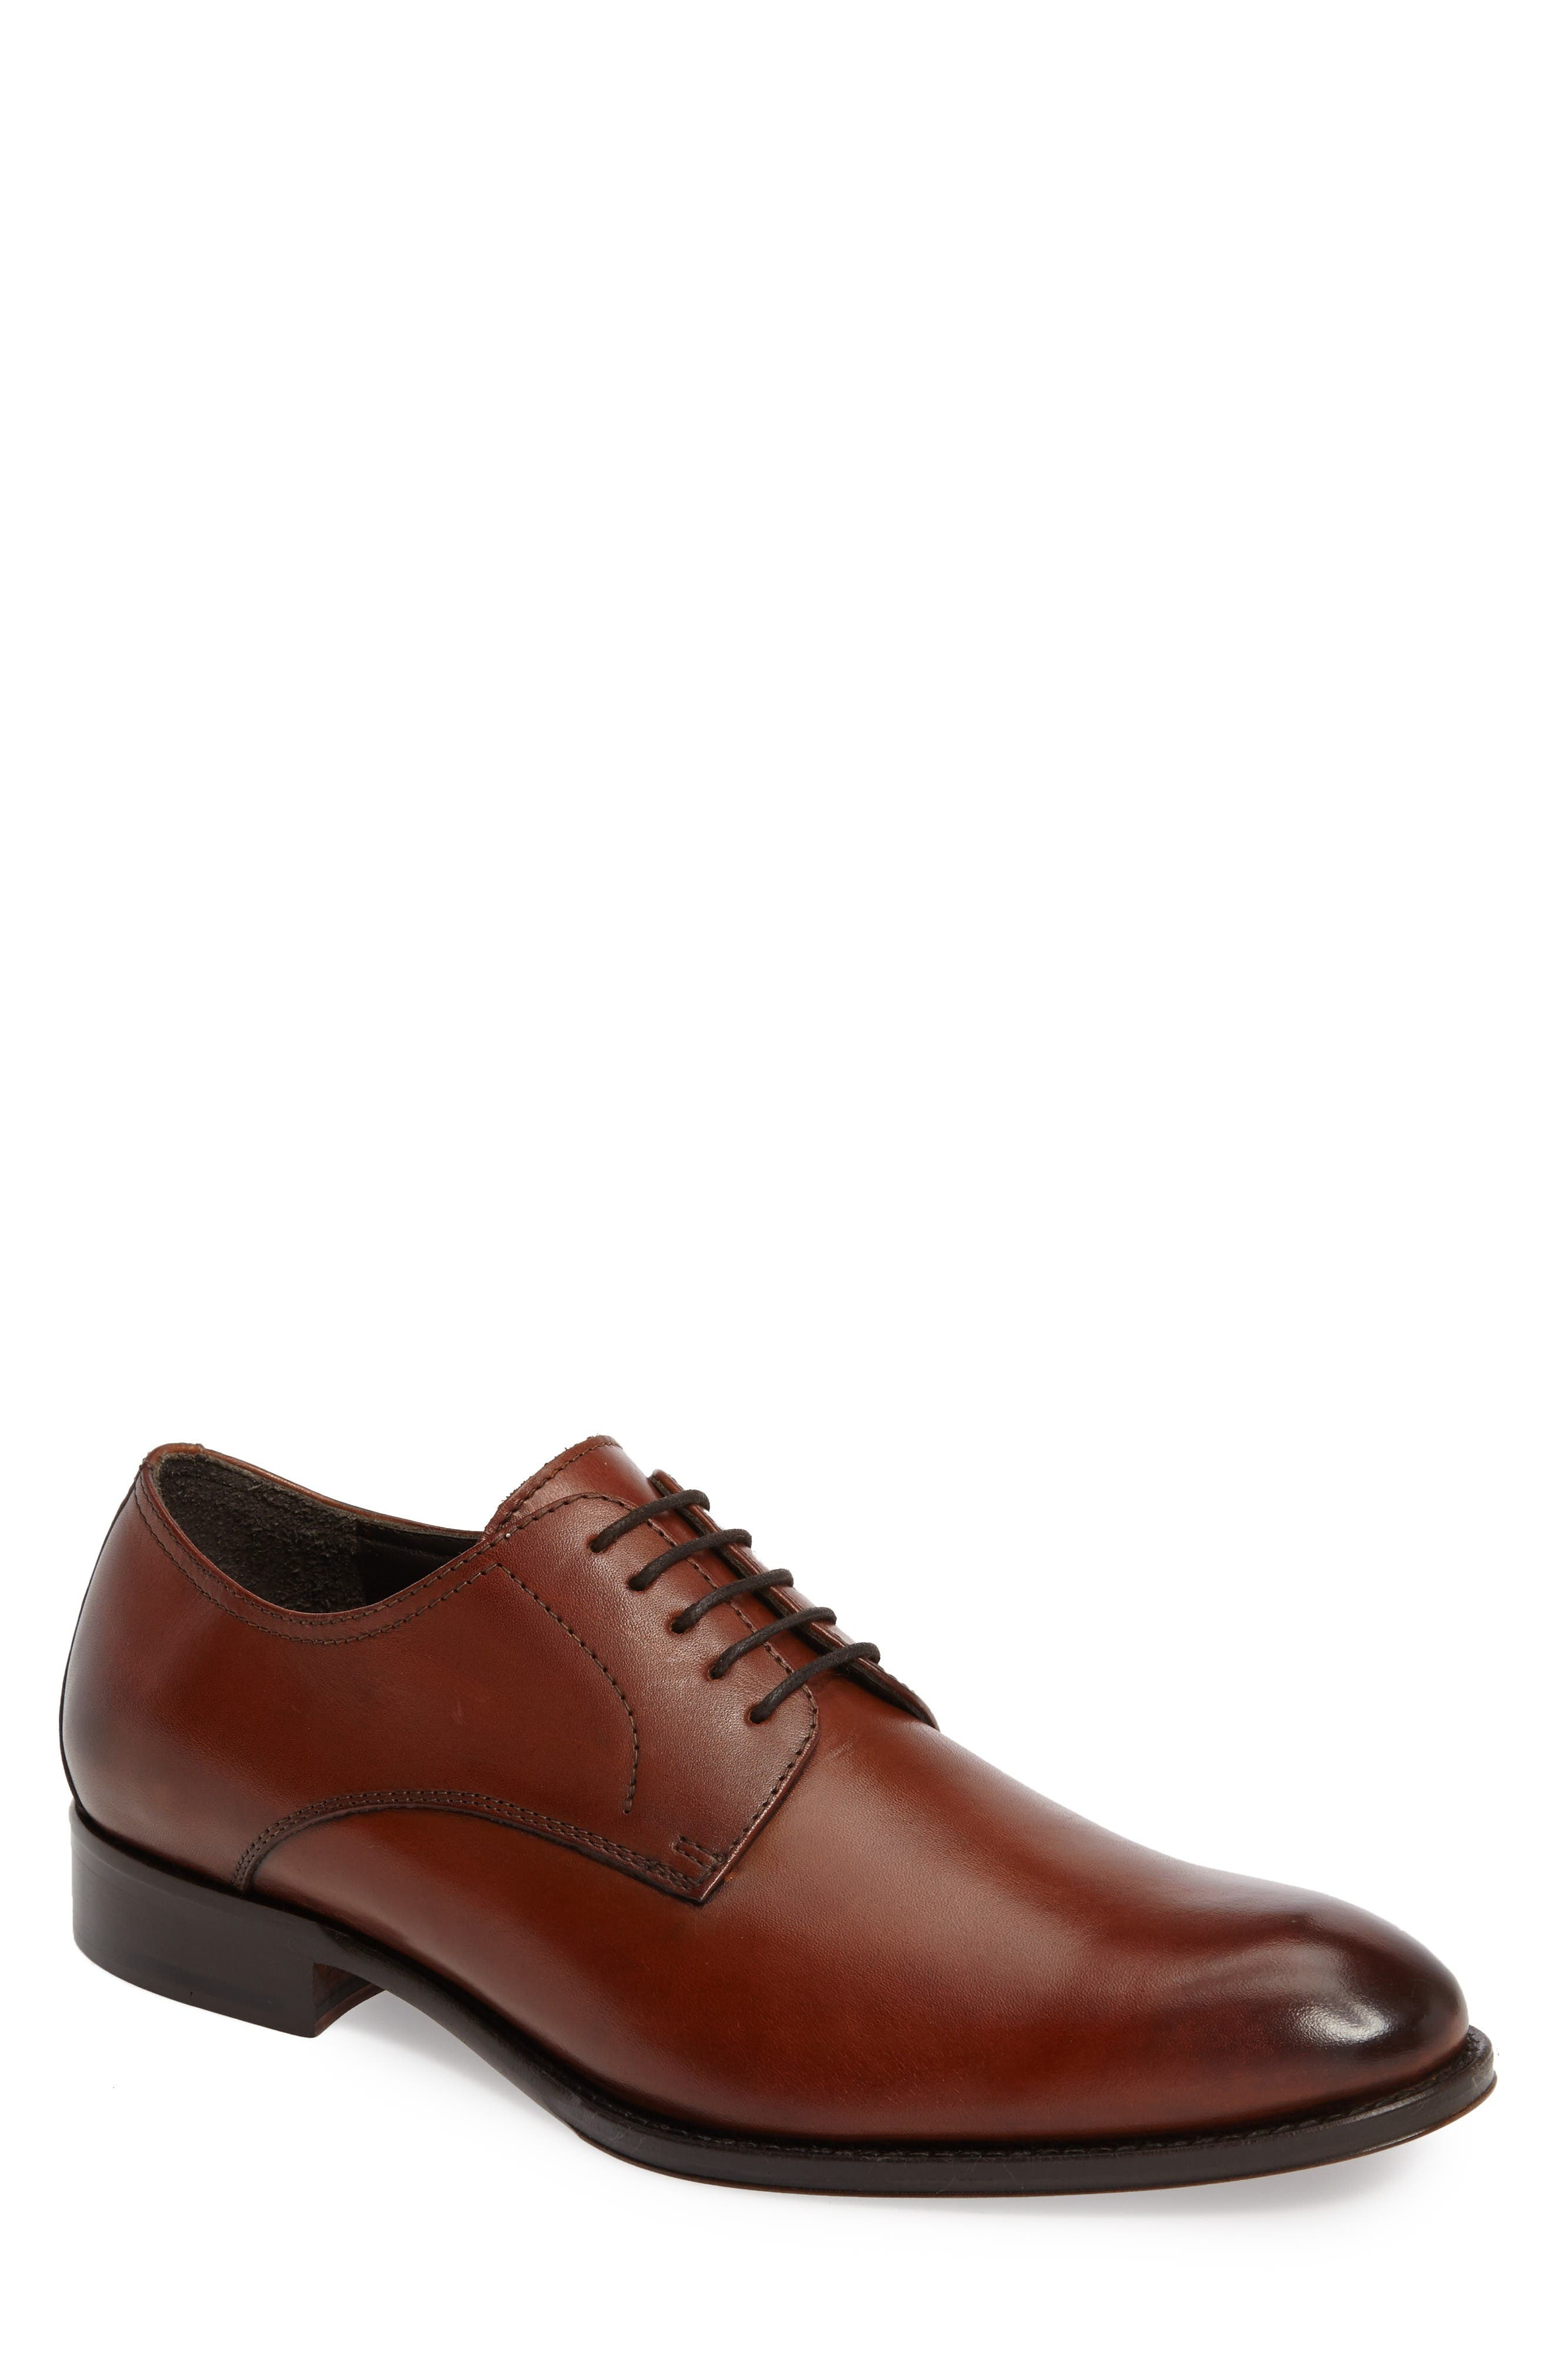 John W. Nordstrom® Moreto Plain Toe Derby (Men)